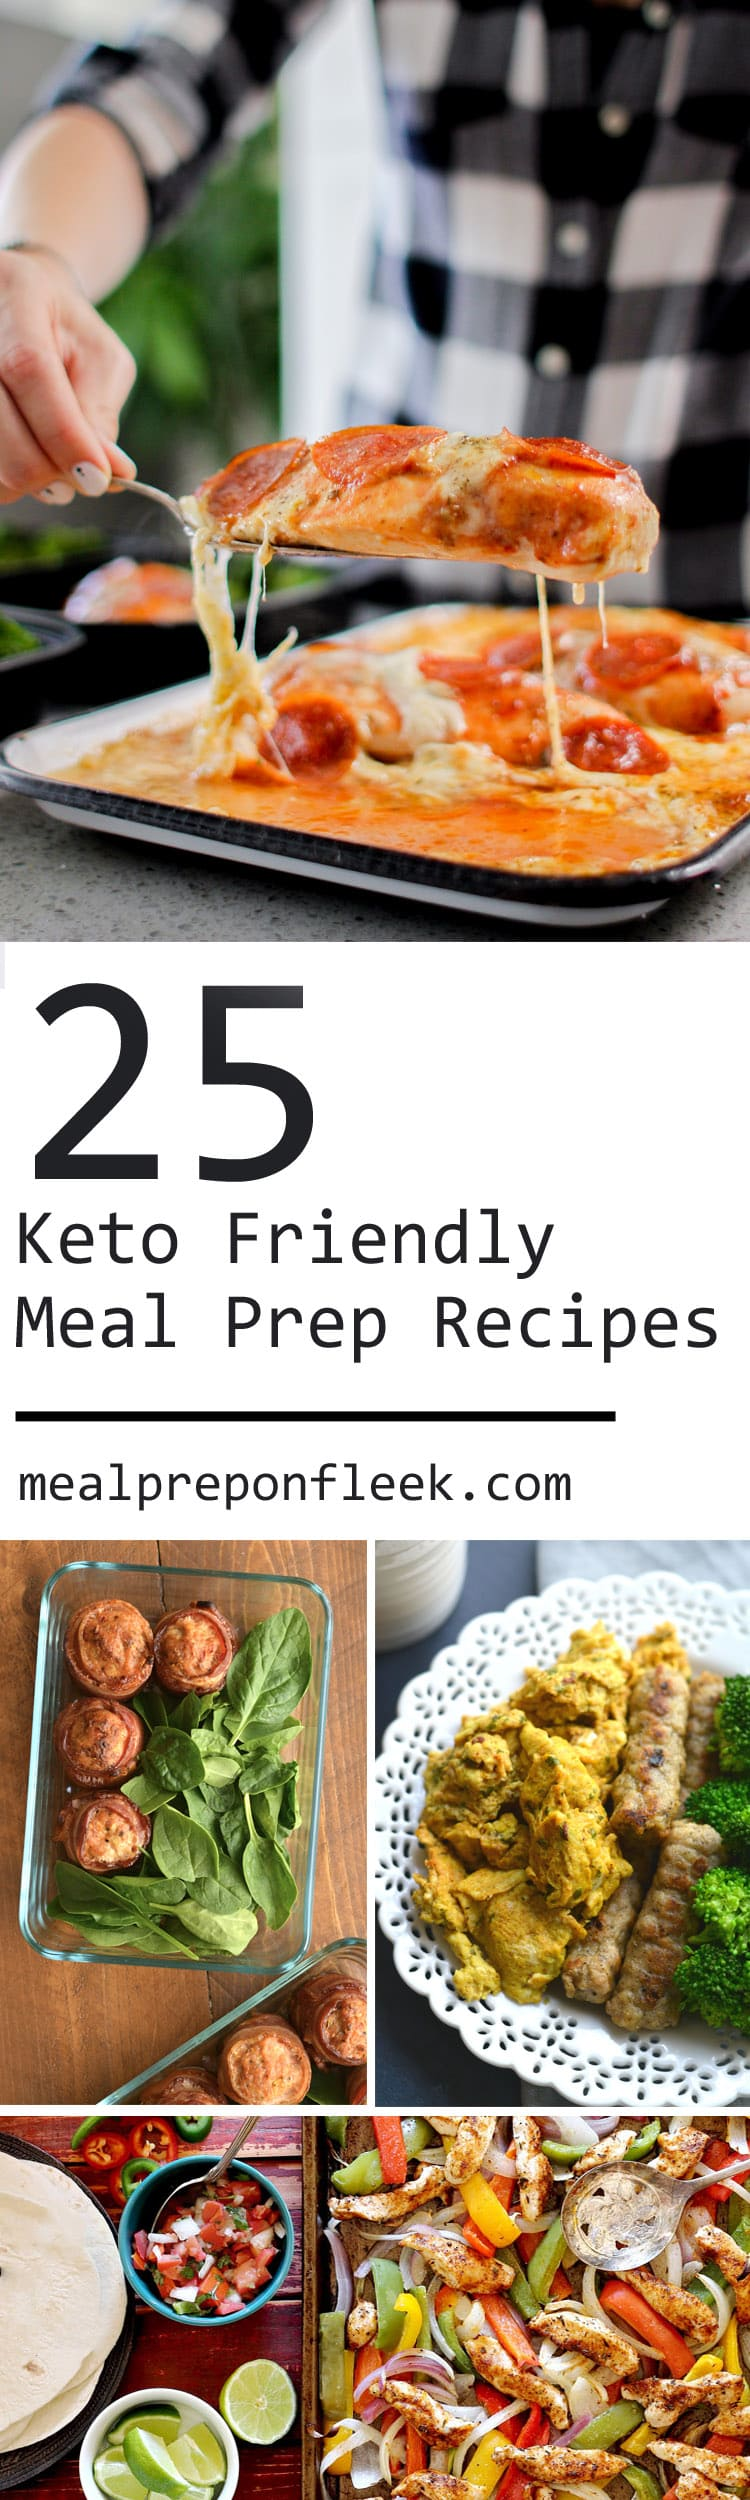 High Fat Low Carb Recipes - Keto Meal Prep Recipes